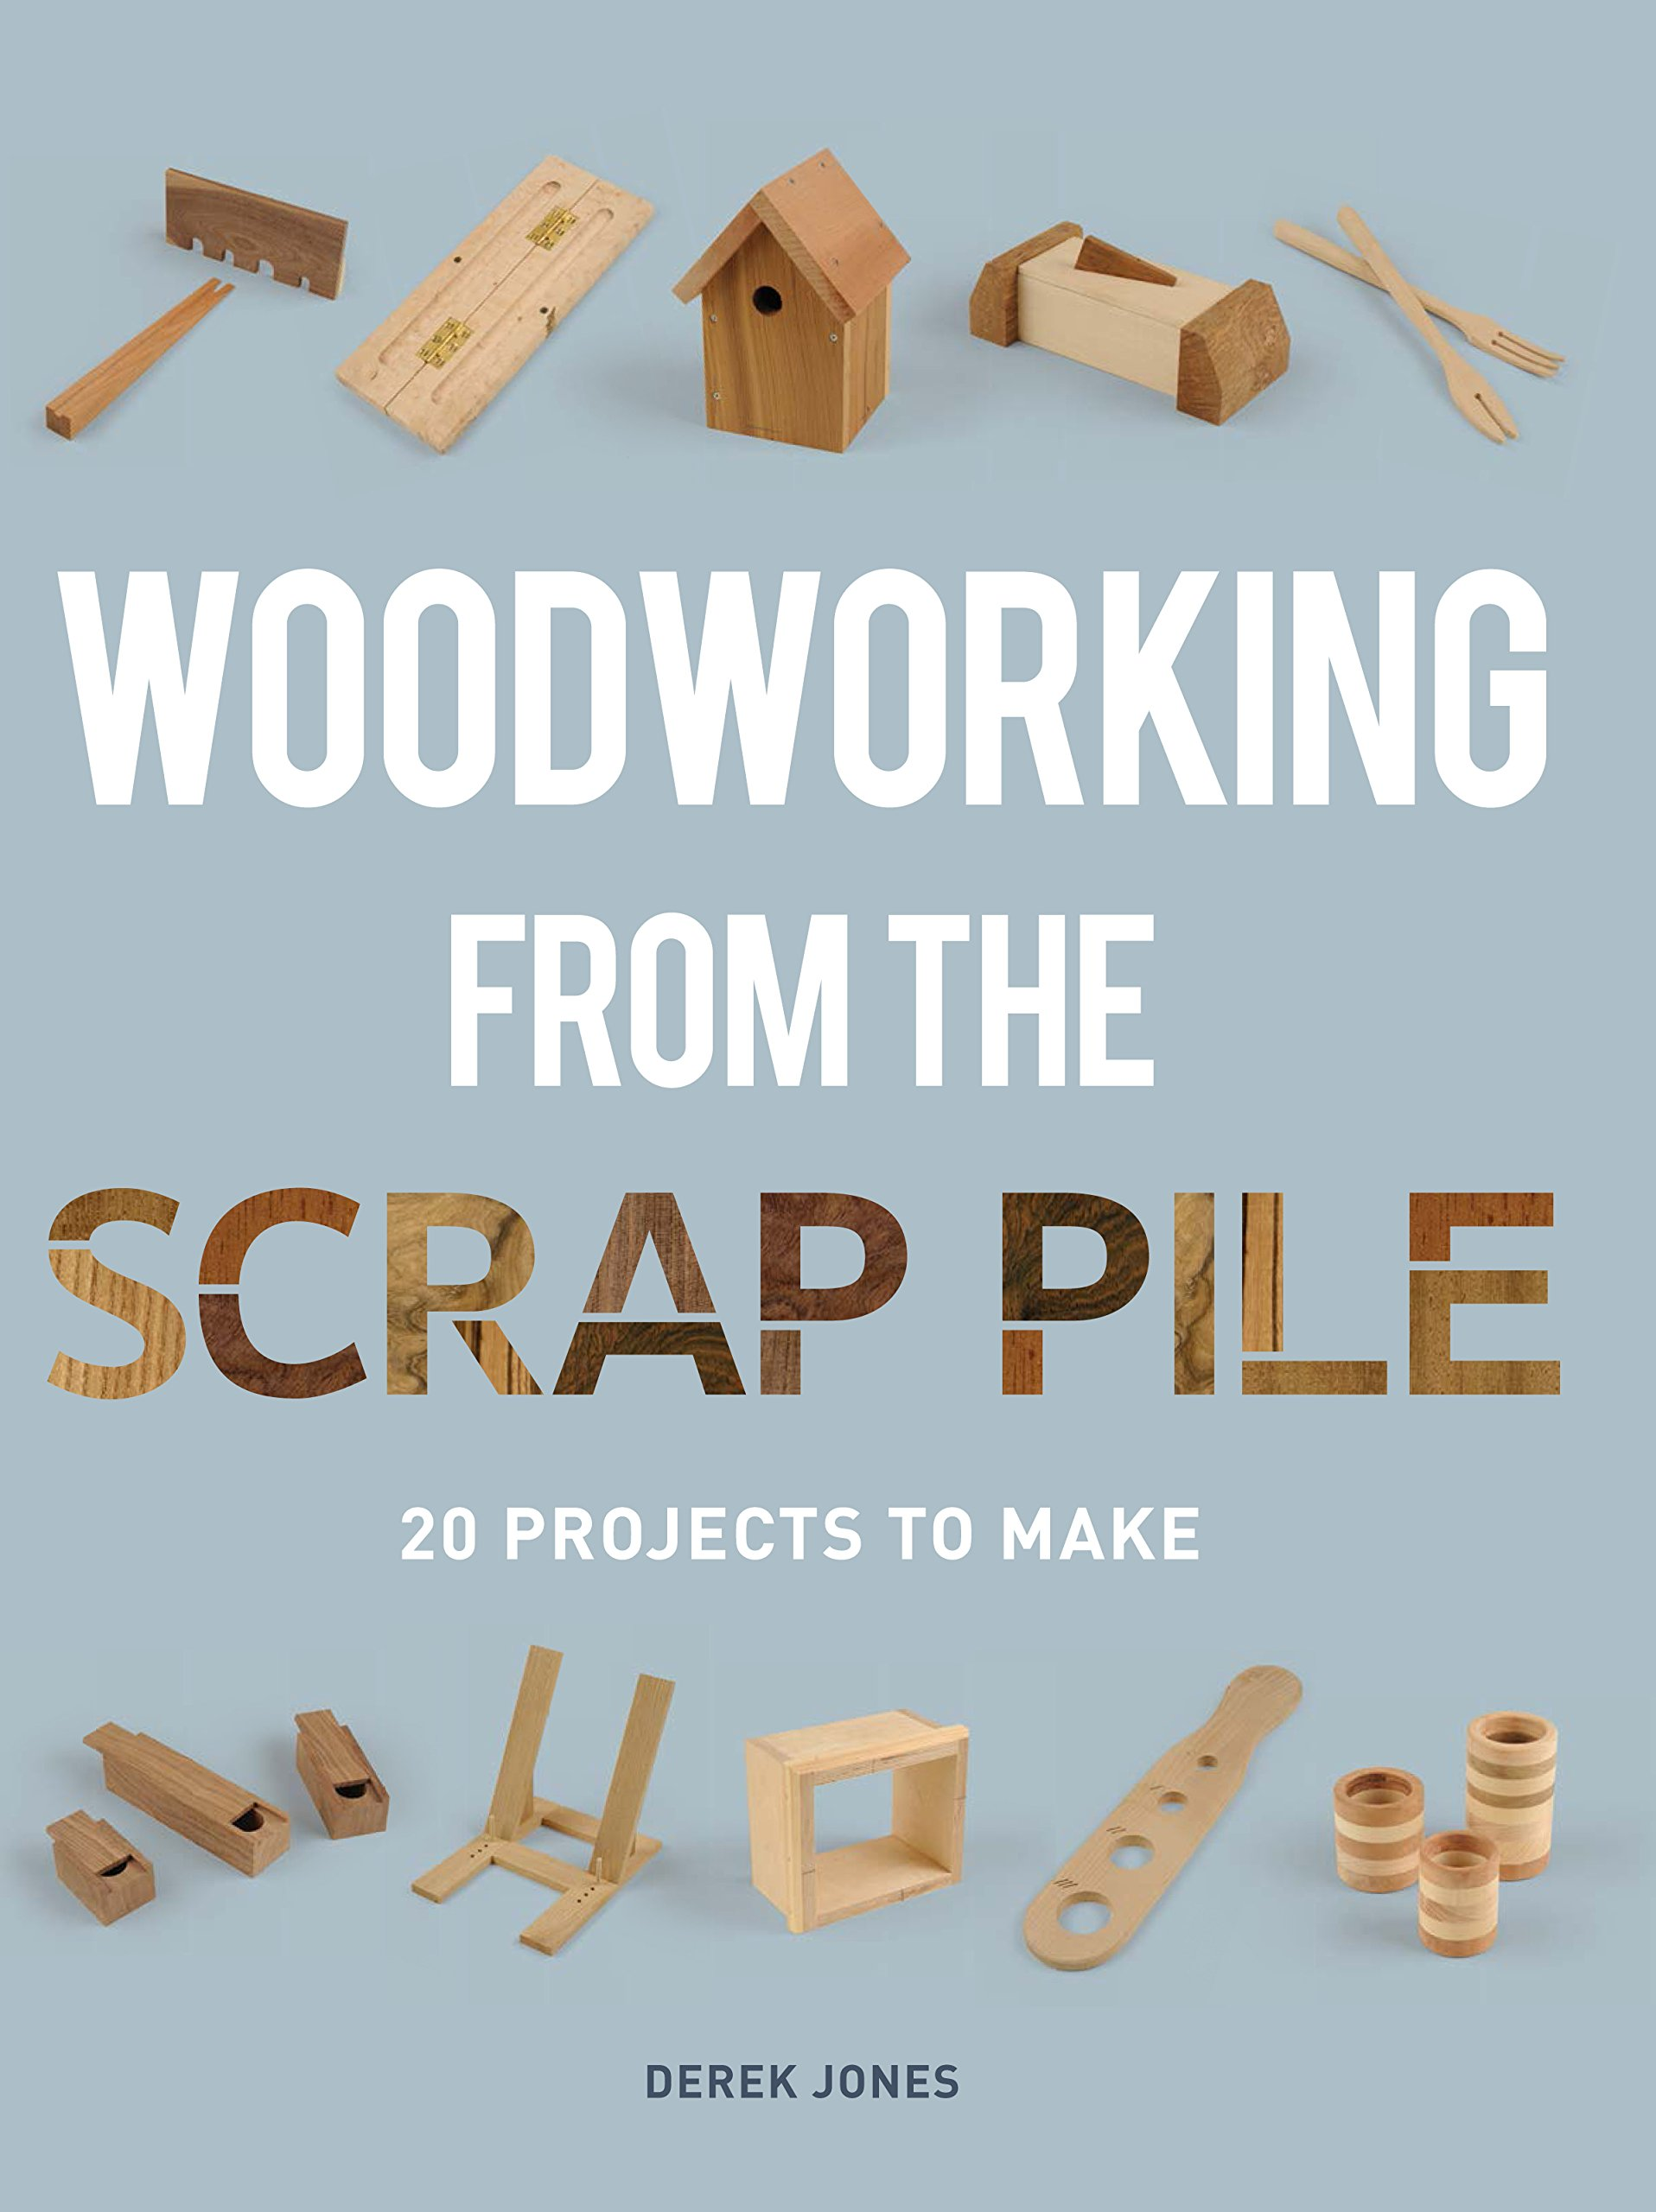 Image result for Woodworking from the Scrap Pile derek jones